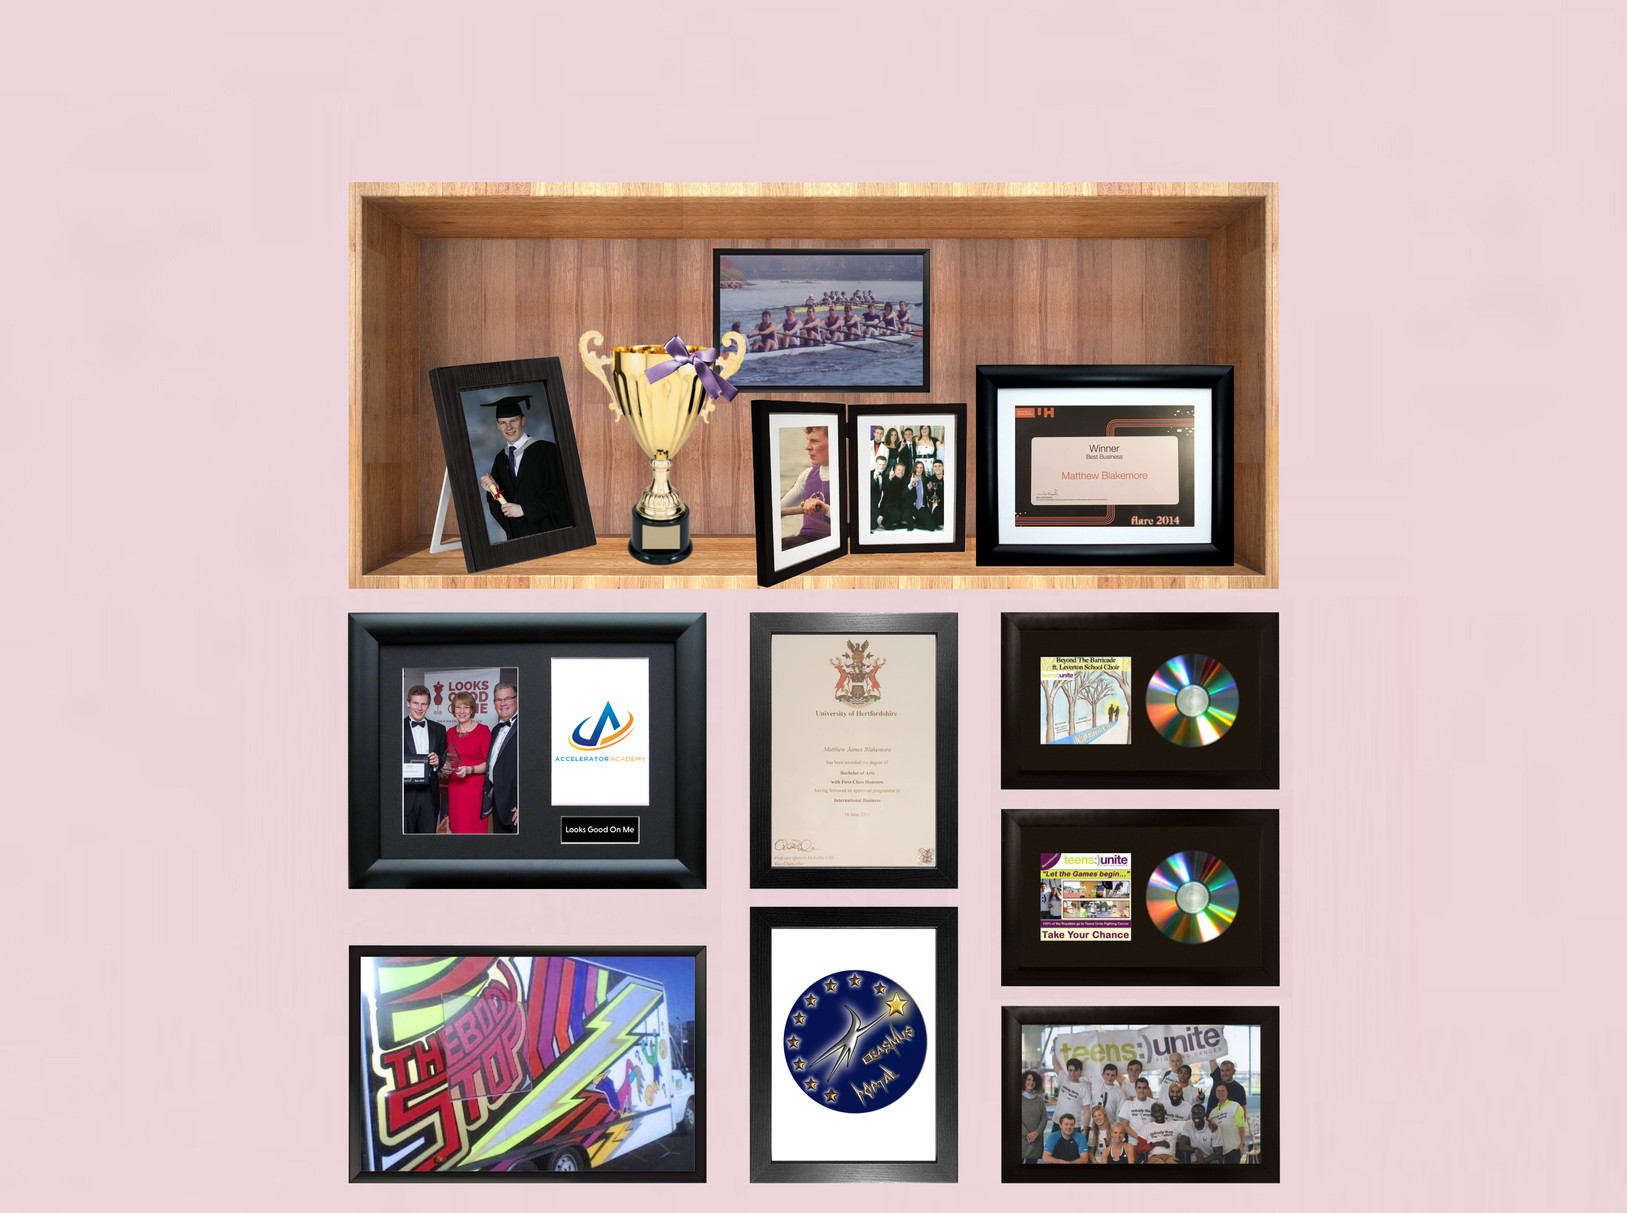 Matthew Blakemore Product Management and Consulting achievements in cabinet and on the wall